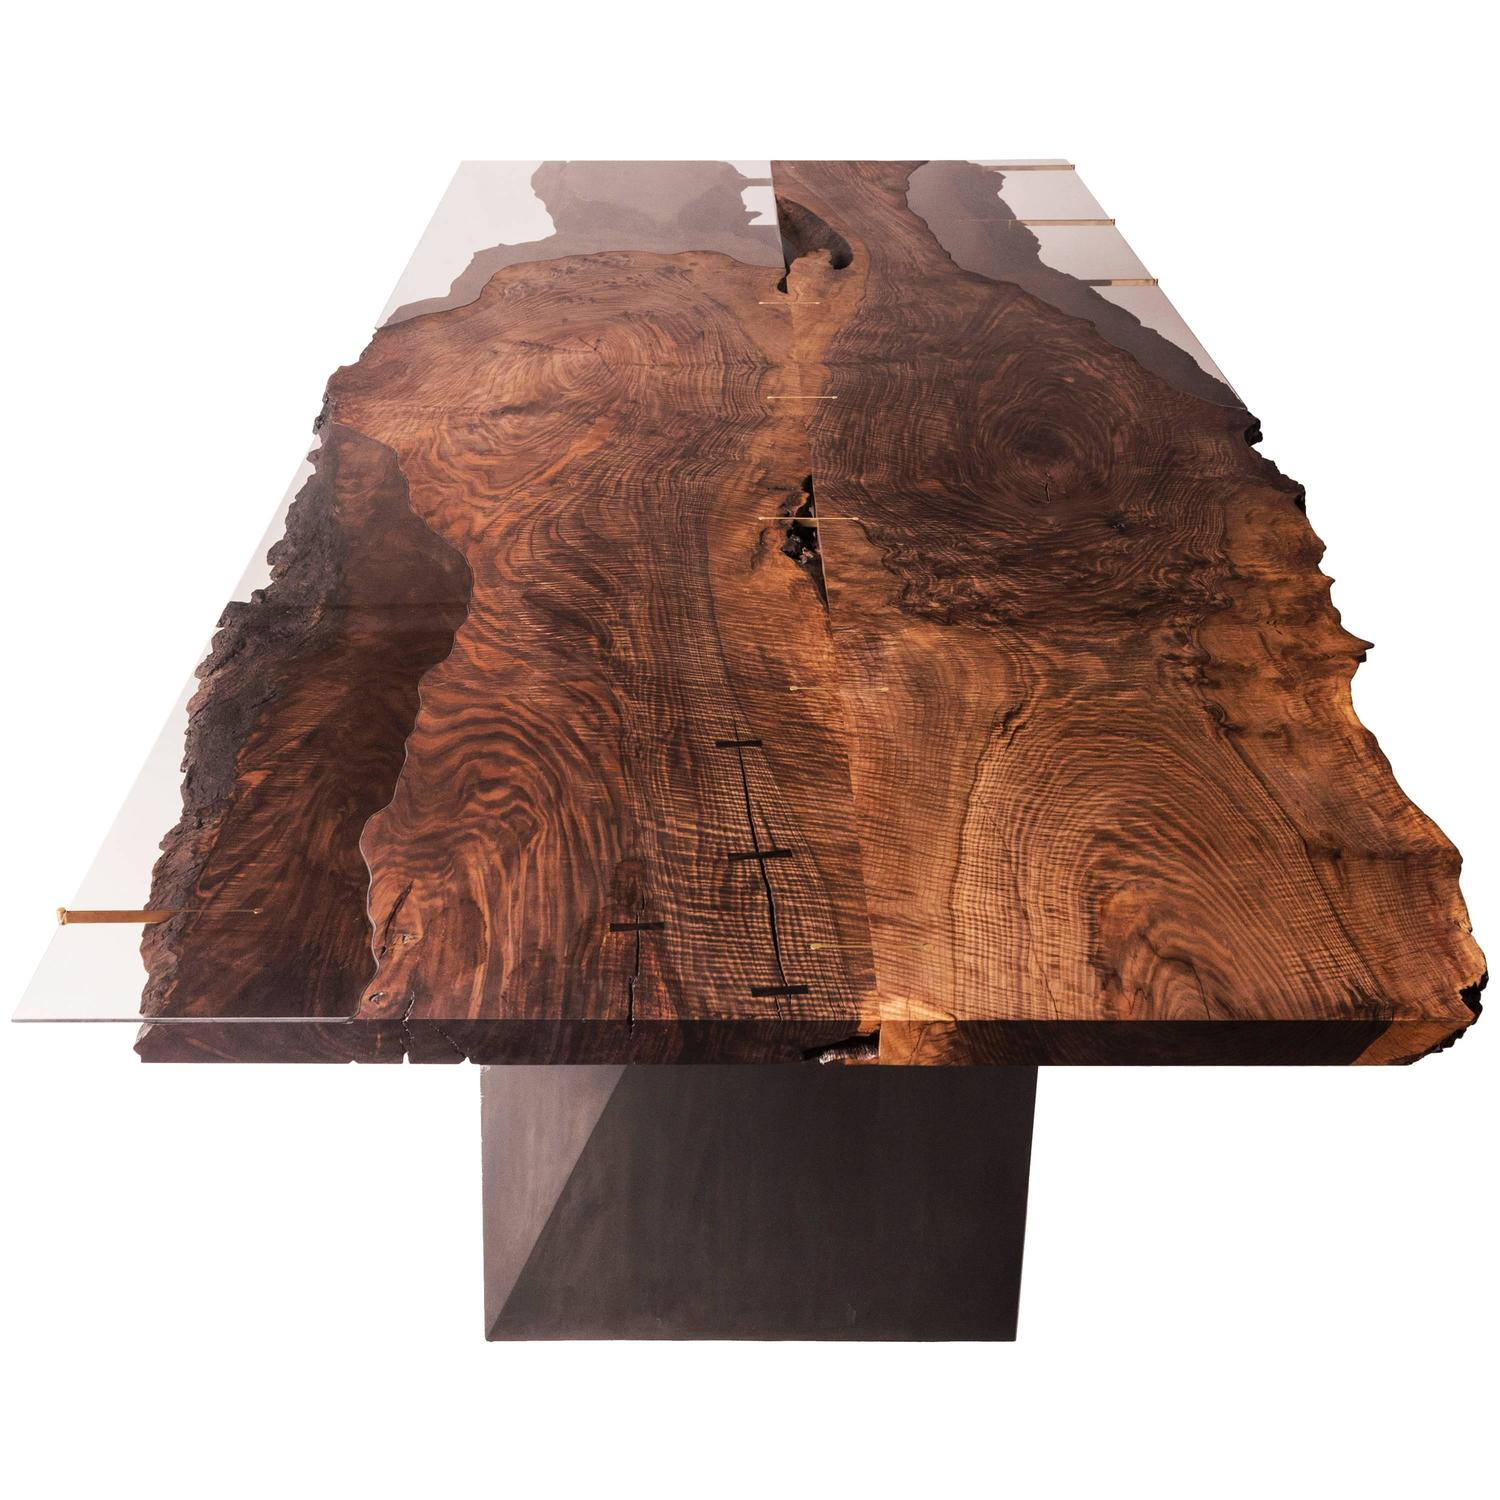 Modern Live Edge Bastogne Walnut And Glass Dining Table On Blackened Steel  Base For Sale At 1stdibs